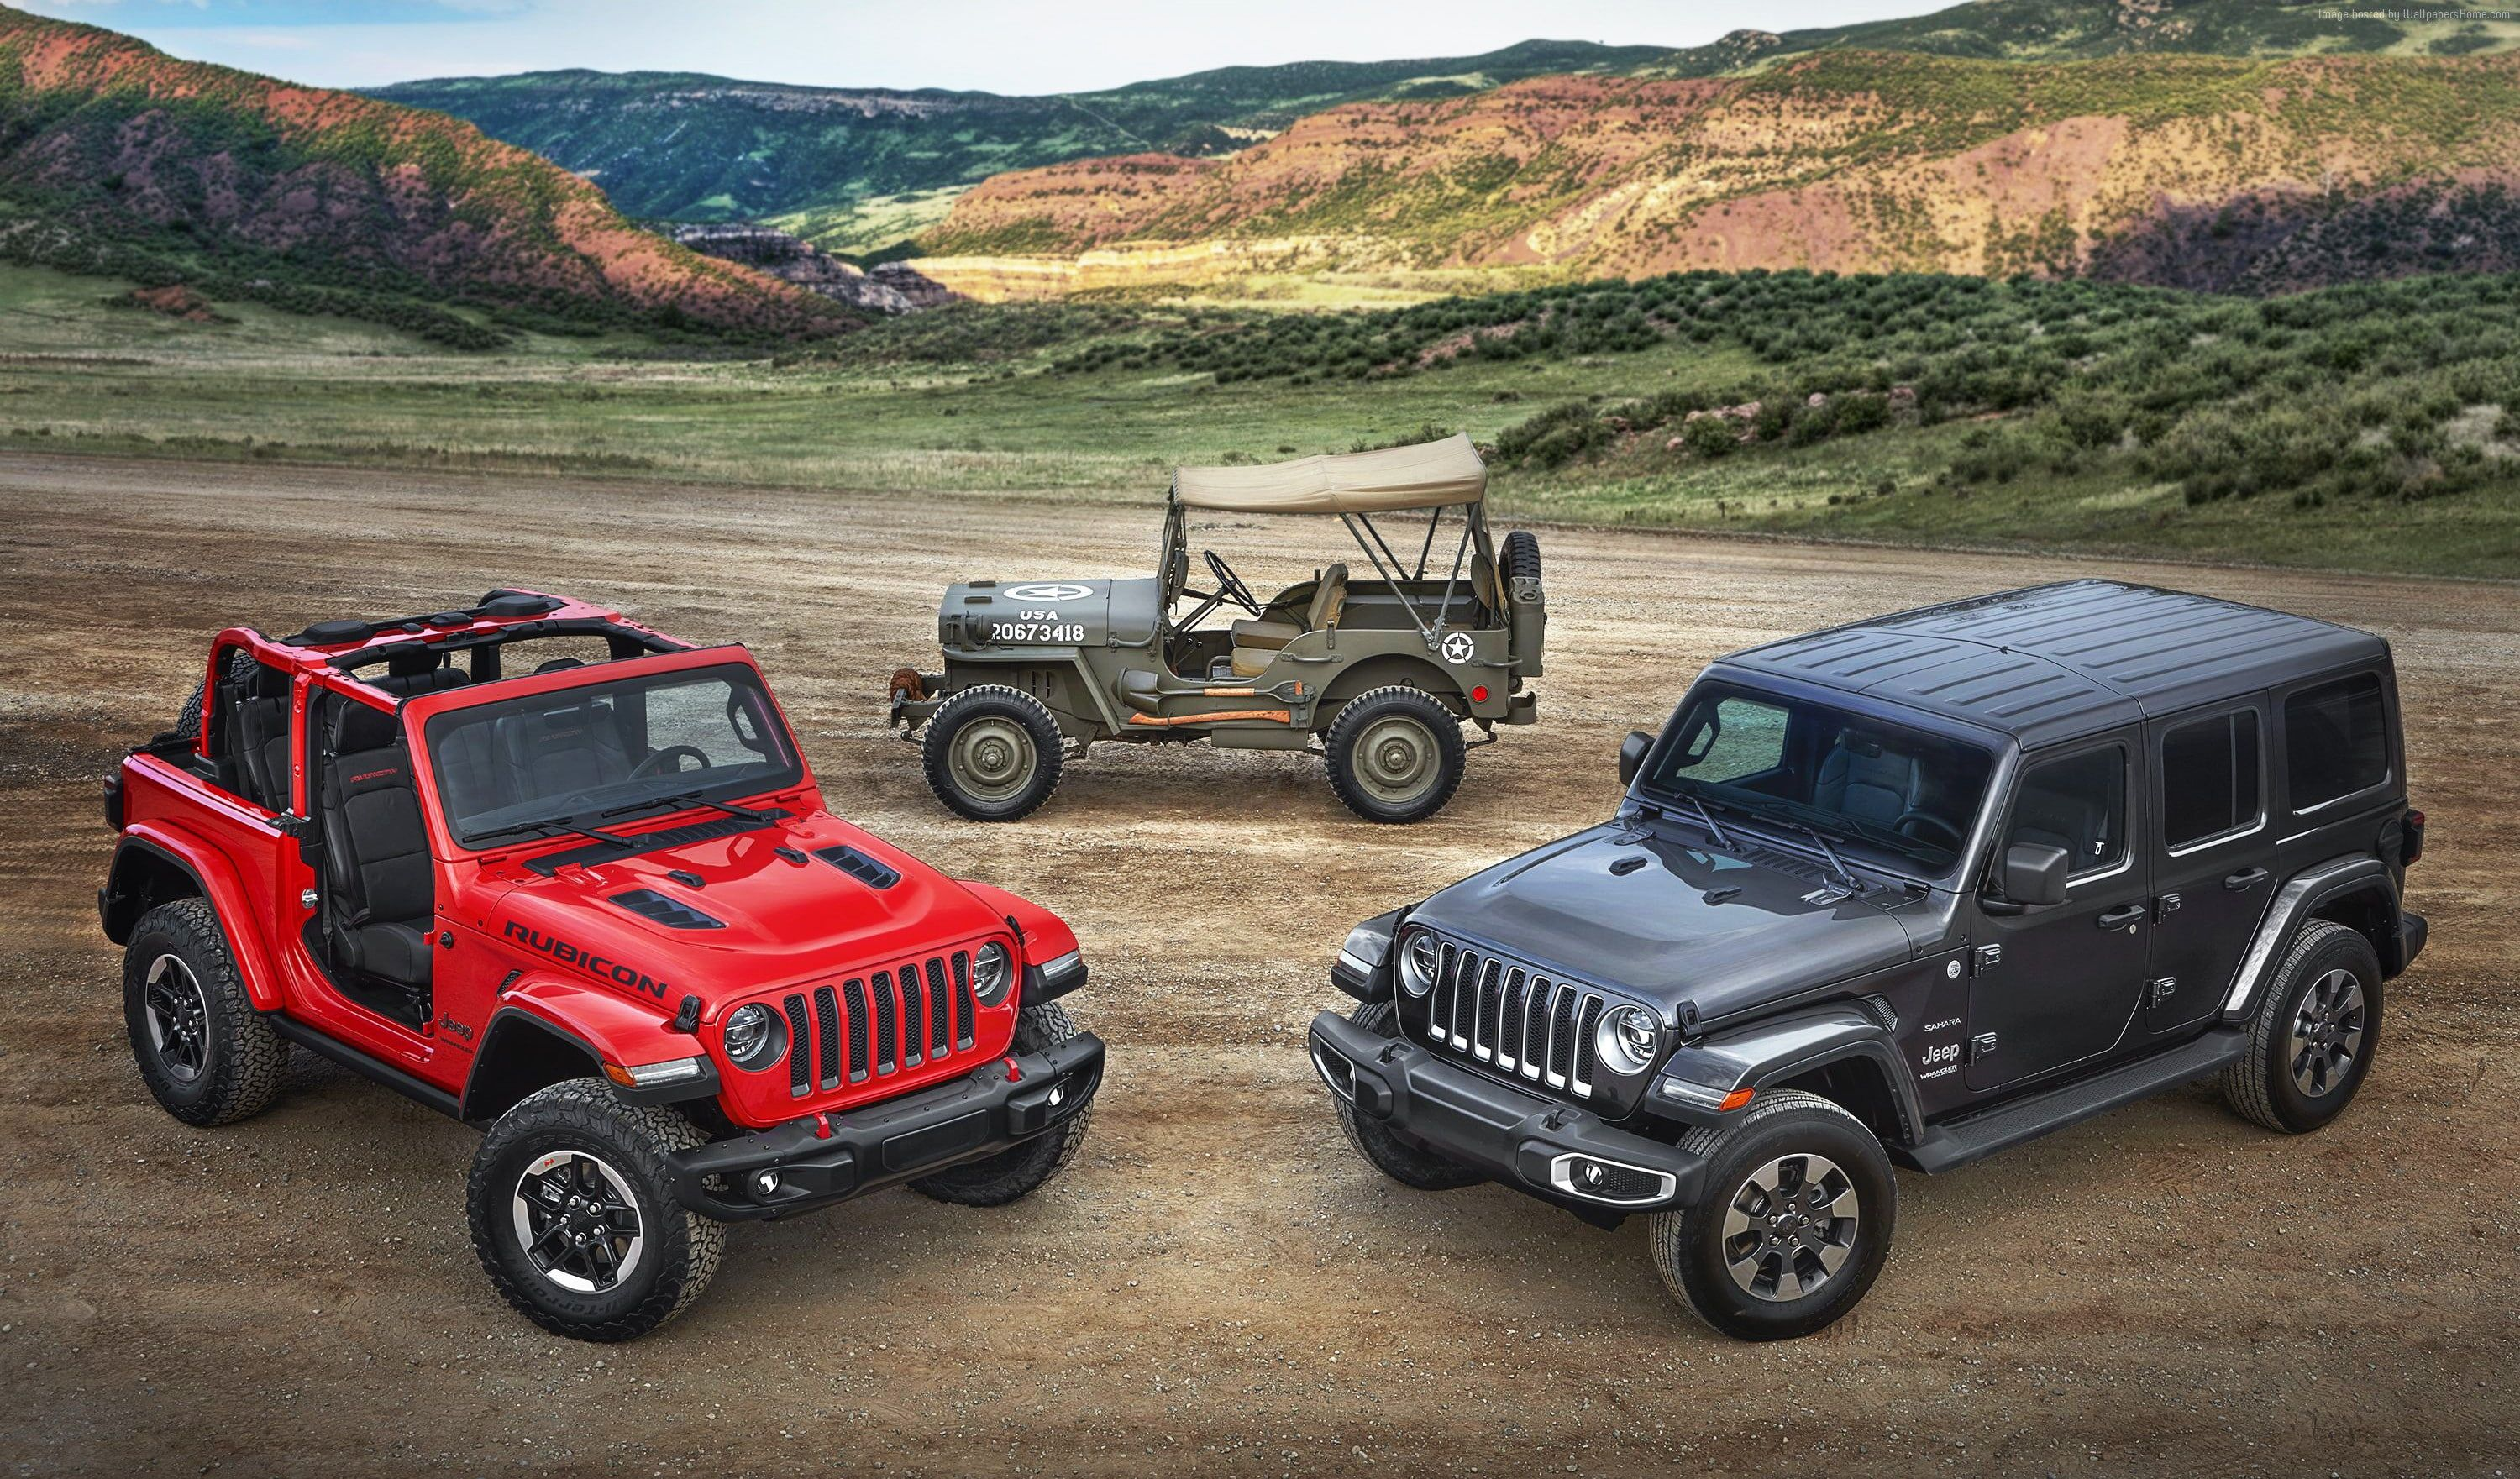 4k Suv Jeep Wrangler 2019 Cars 2k Wallpaper Hdwallpaper Desktop Wrangler Jeep Jeep Willys Jeep Wrangler Rubicon